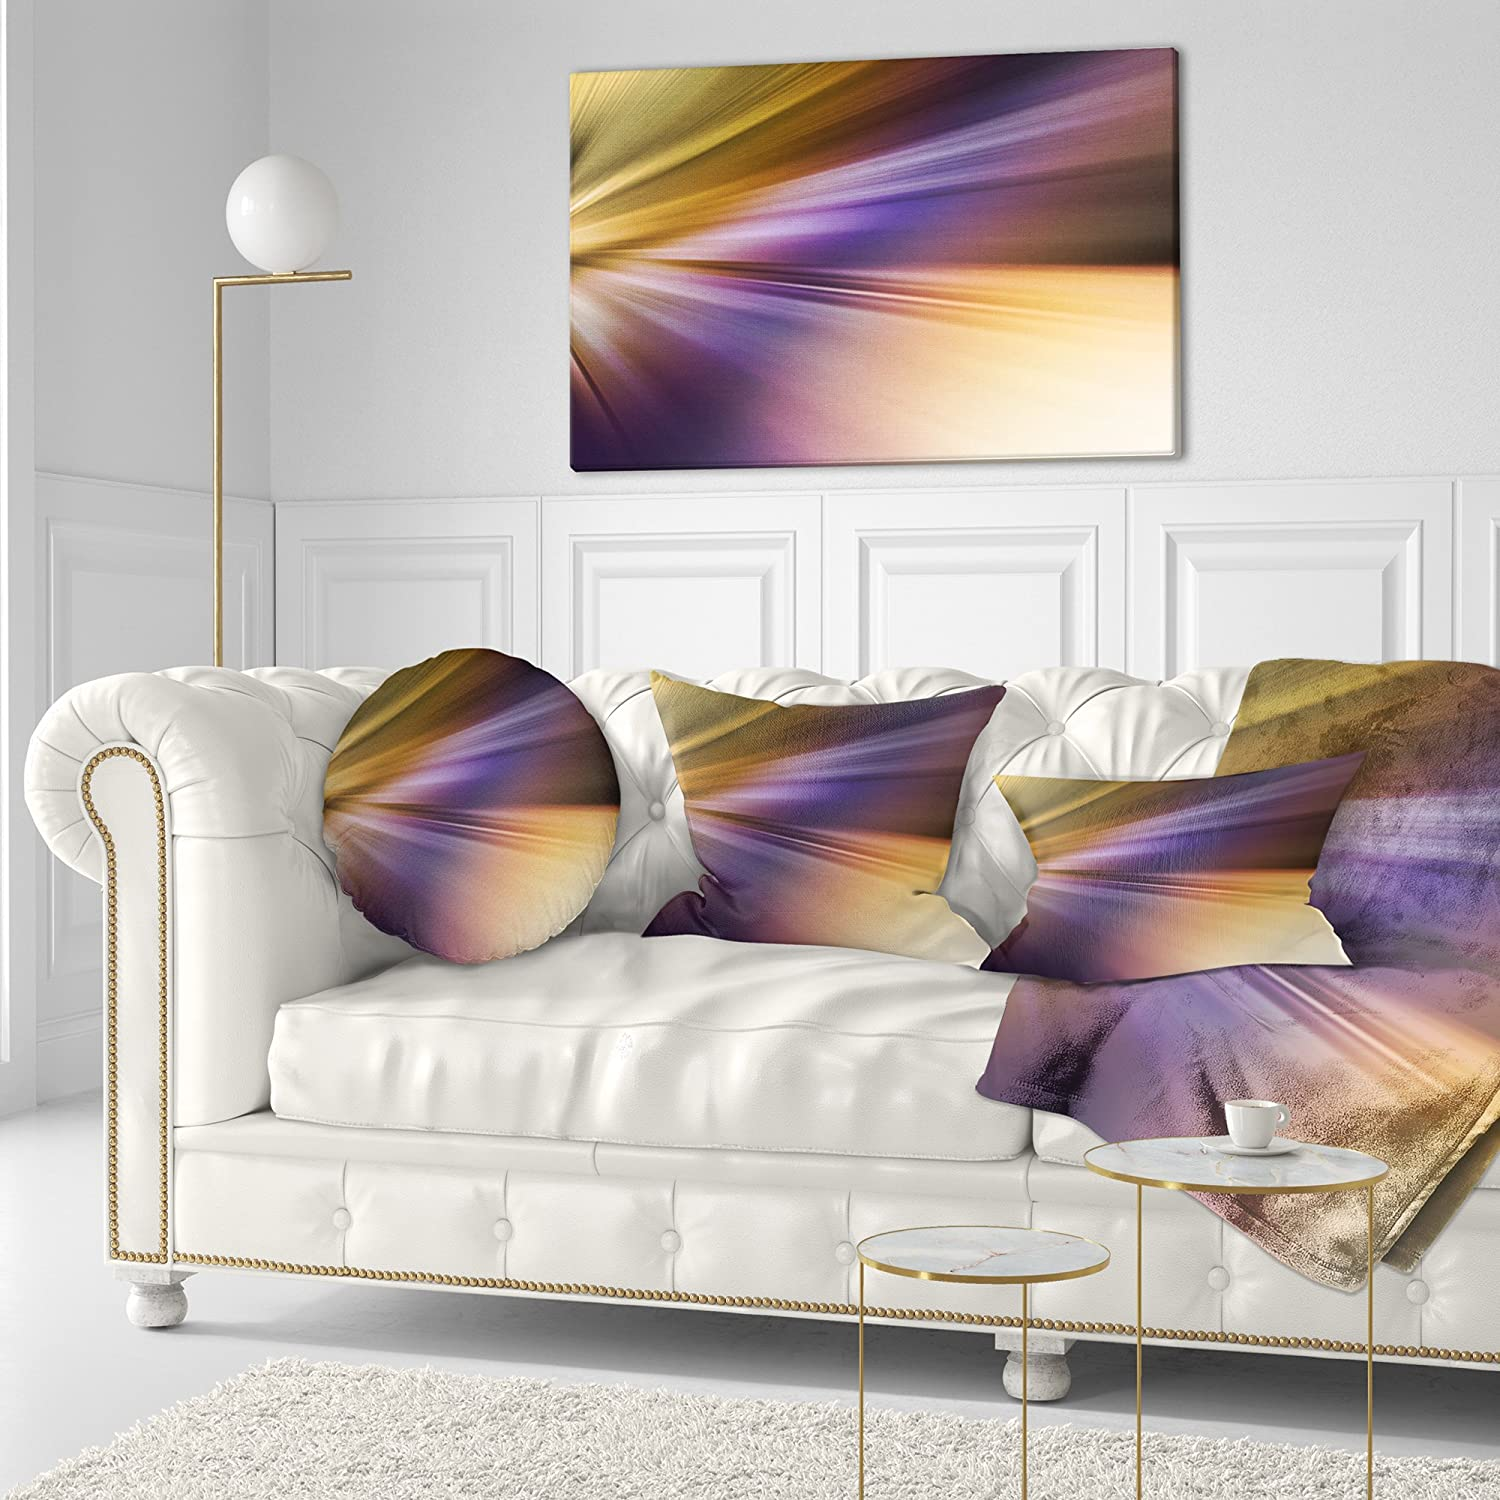 in Designart CU8137-12-20 Rays of Speed Purple Brown Abstract Lumbar Cushion Cover for Living Room Sofa Throw Pillow 12 in x 20 in Insert Printed On Both Side